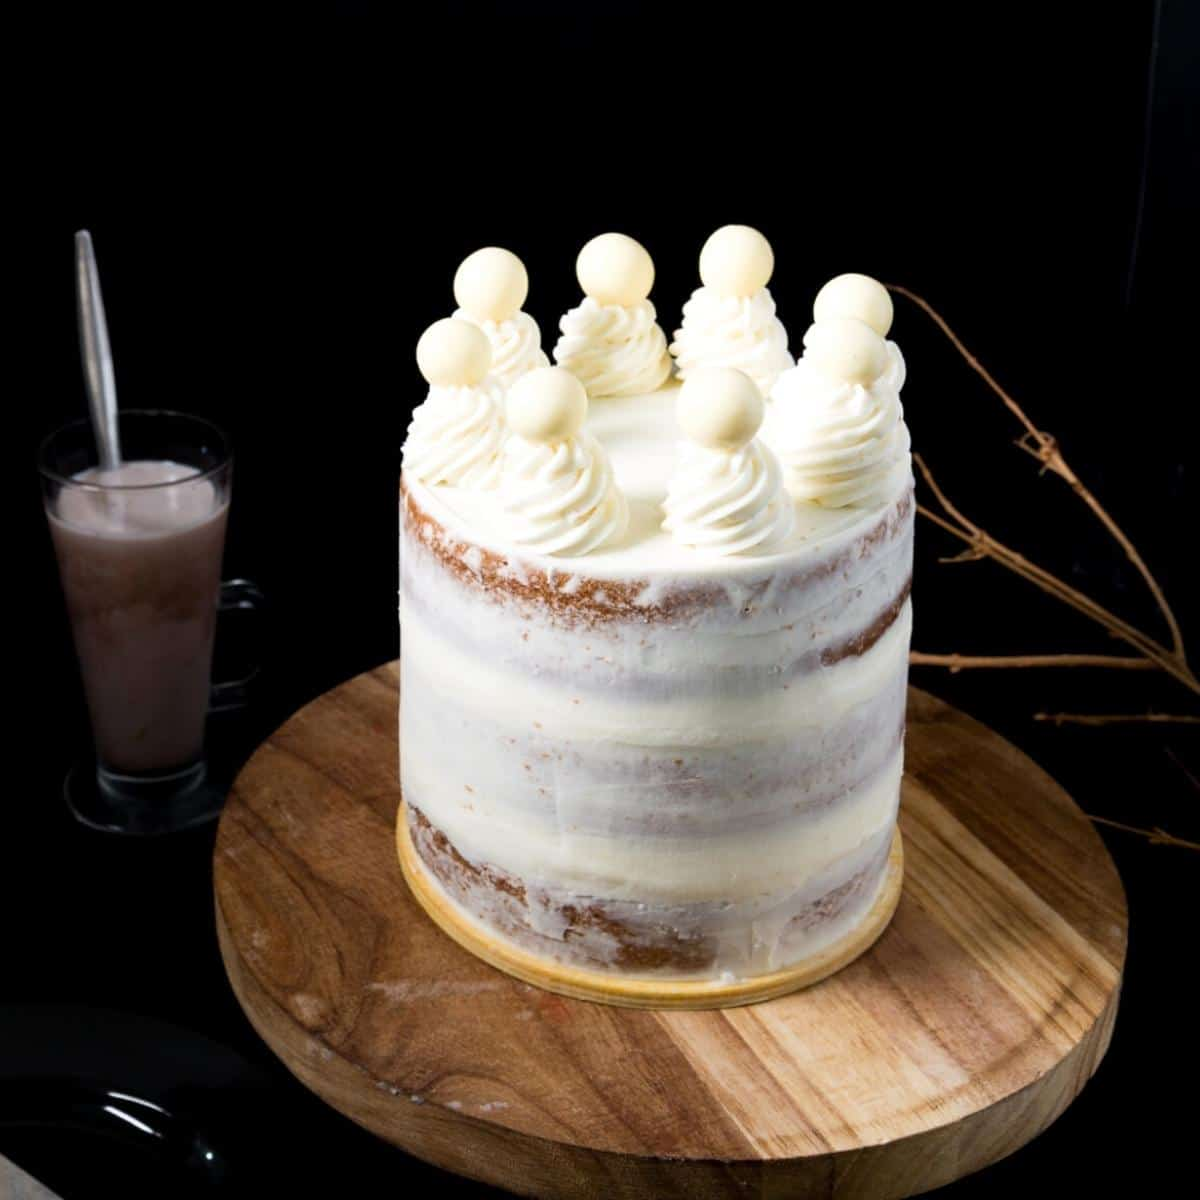 A naked cake on a wooden board